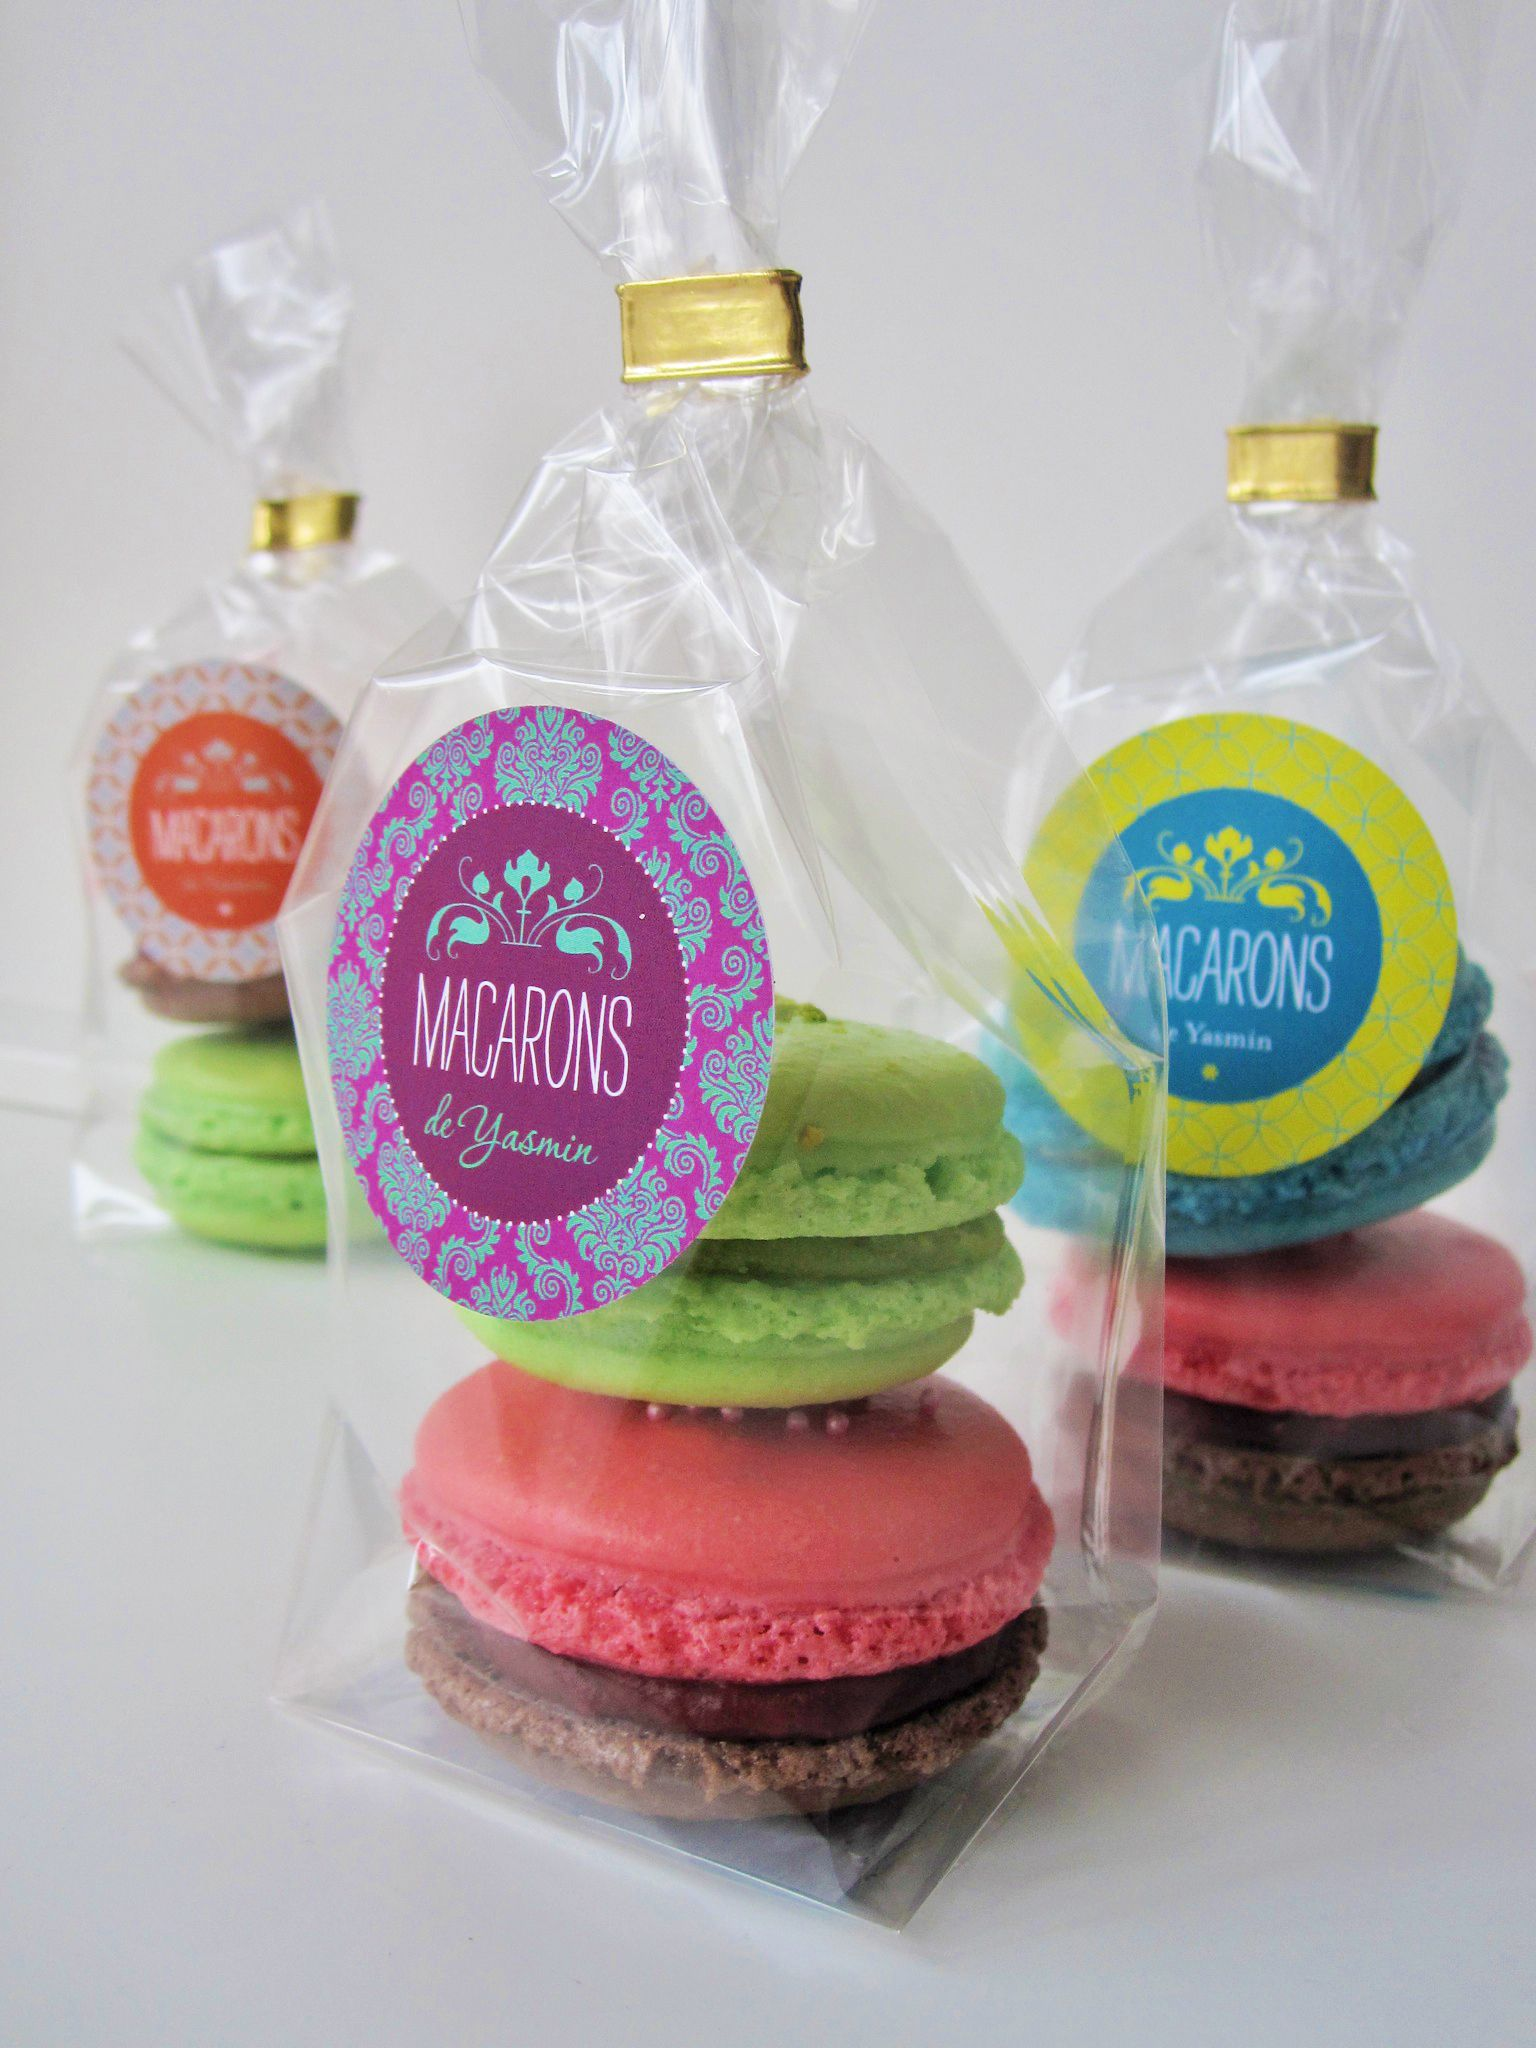 Macarons packaging and labeling | Macarons de Yasmin ...